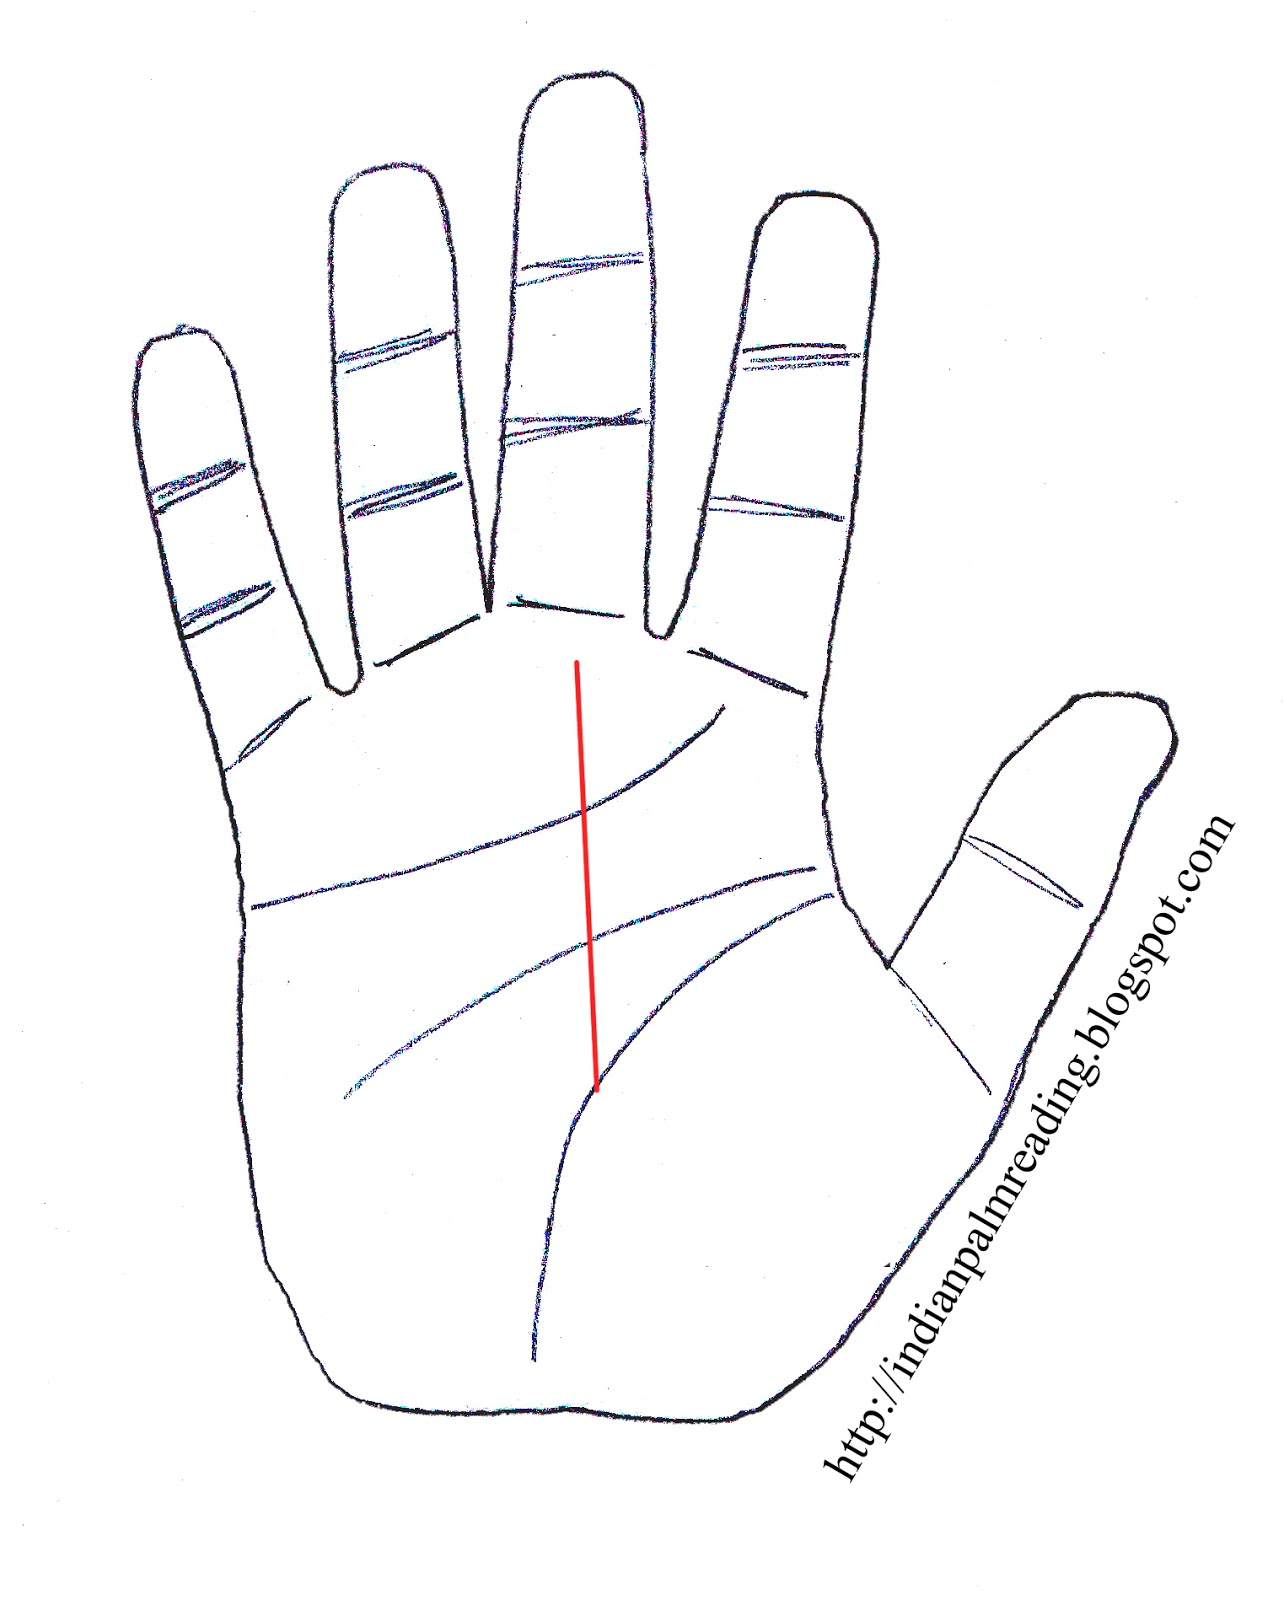 Palmistry Line Of Success Wiring Diagrams Watkins 301758 230v 50 Amp Subpanel 4 Circuit Breaker Box Ebay Meaning Fate In Indian Palm Broken Life Reading Lines